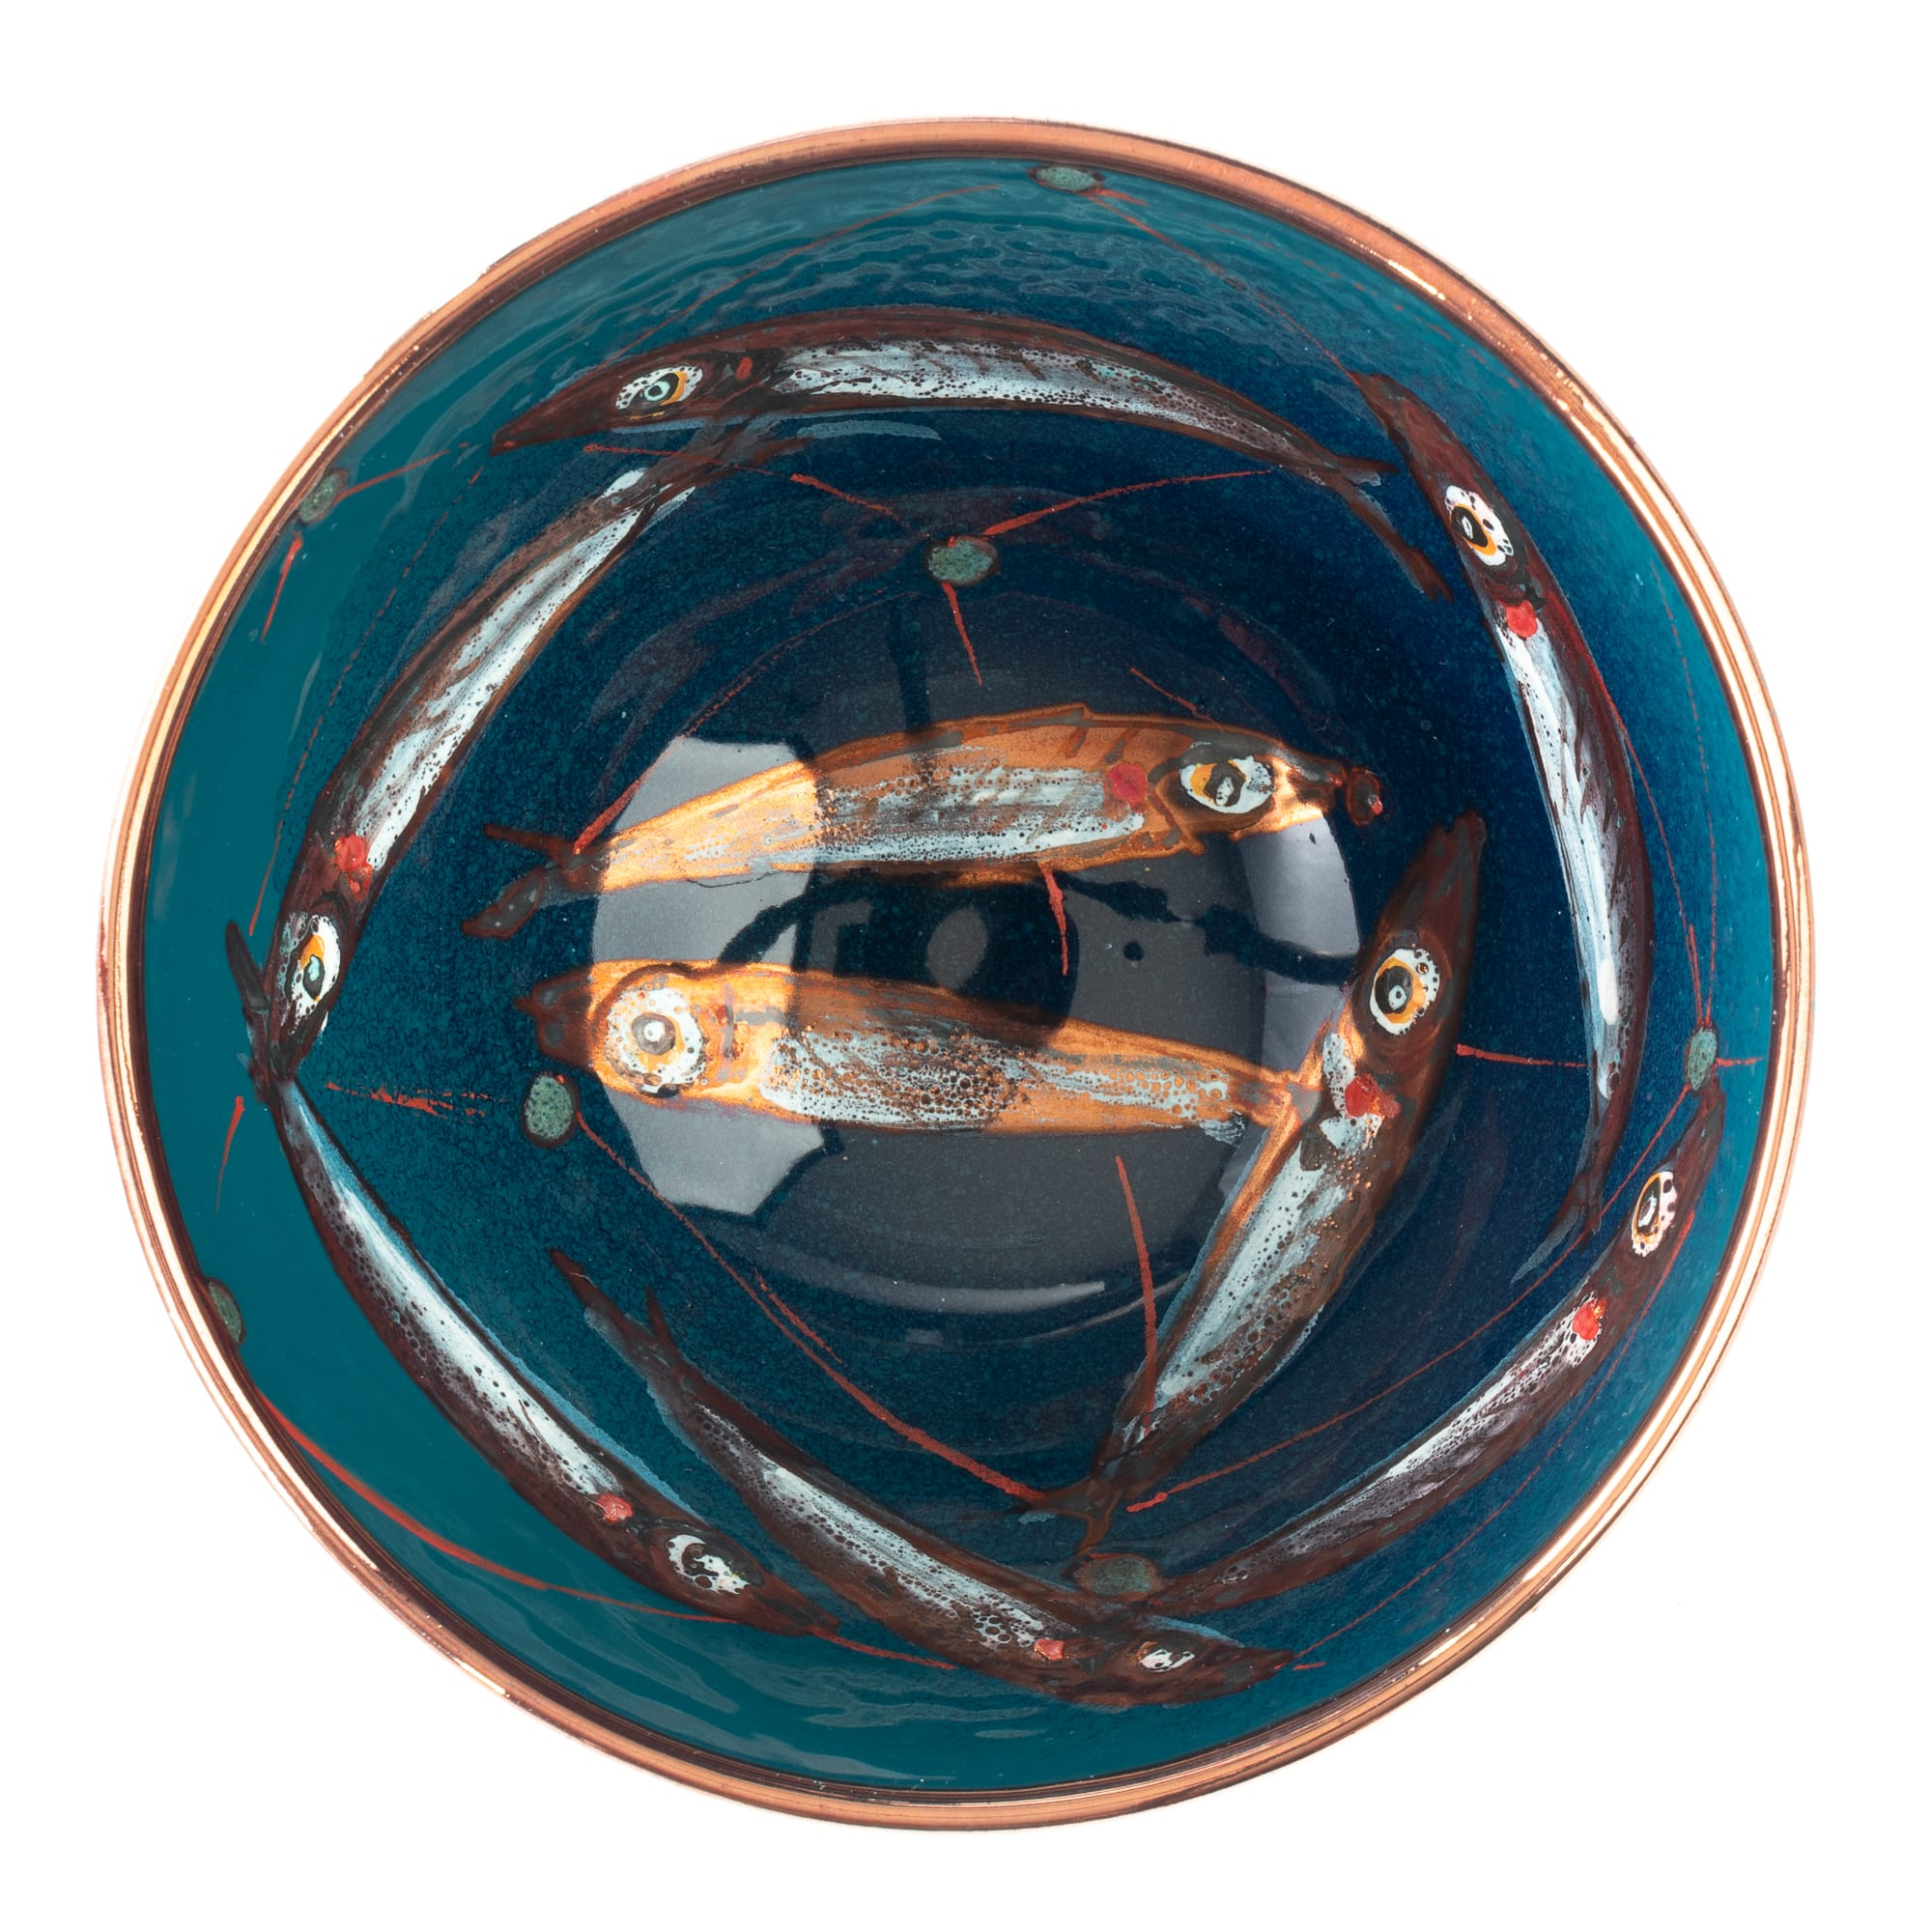 Vignoli Small Bowl with Painted Fish Design 25